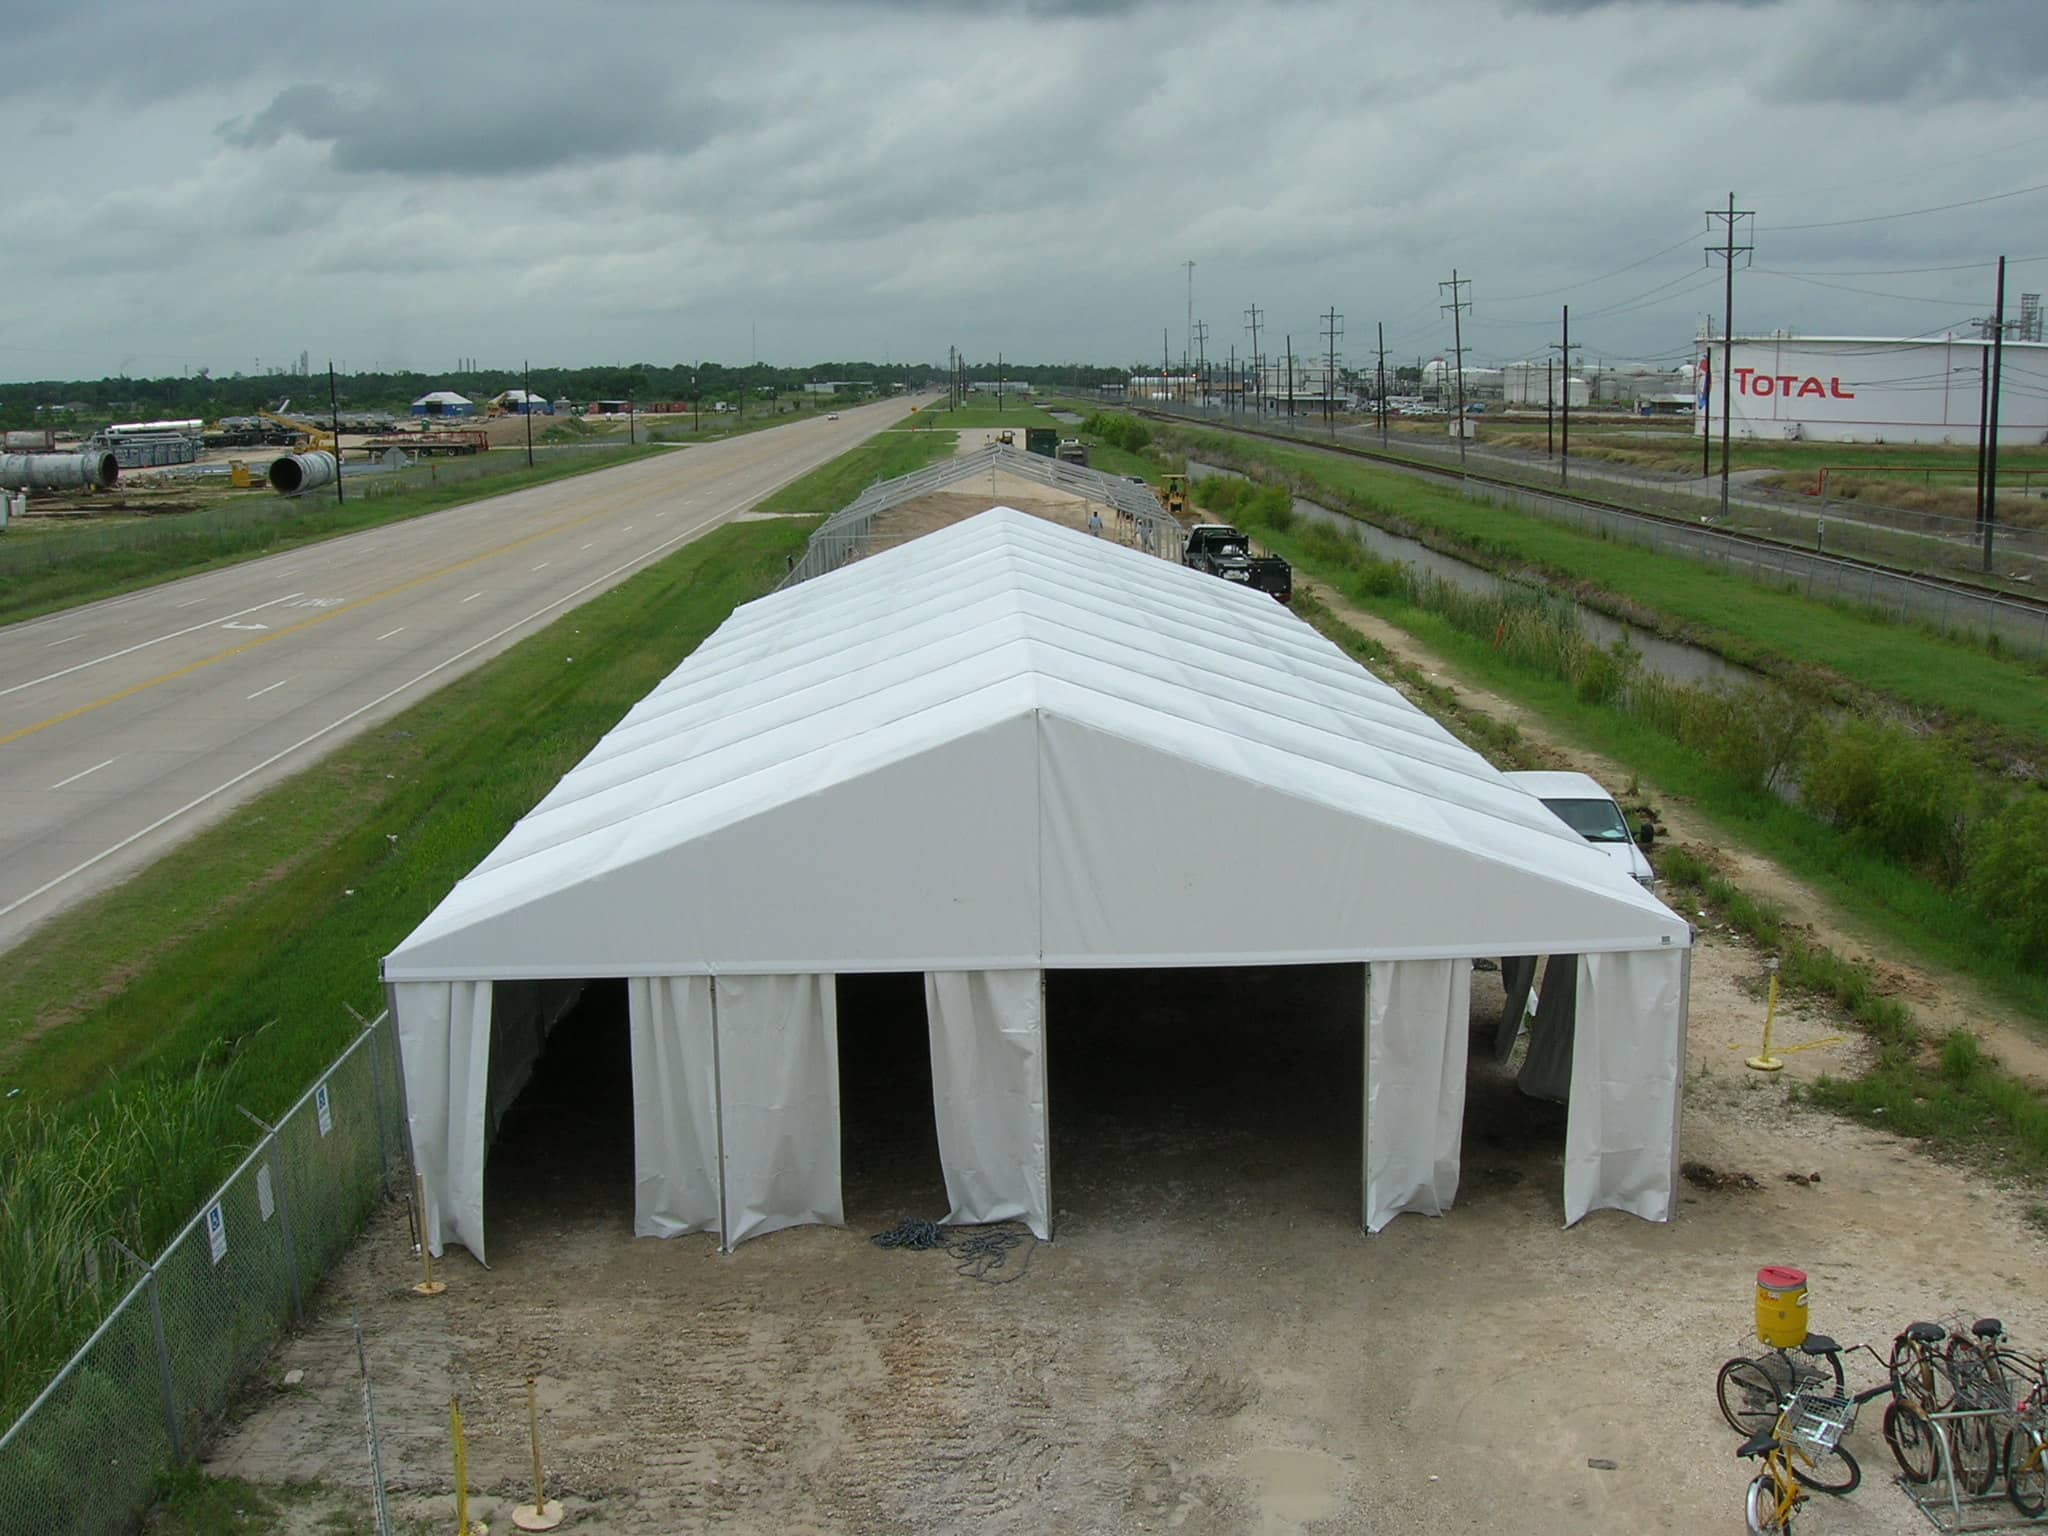 12m/40'w Clearspan tent